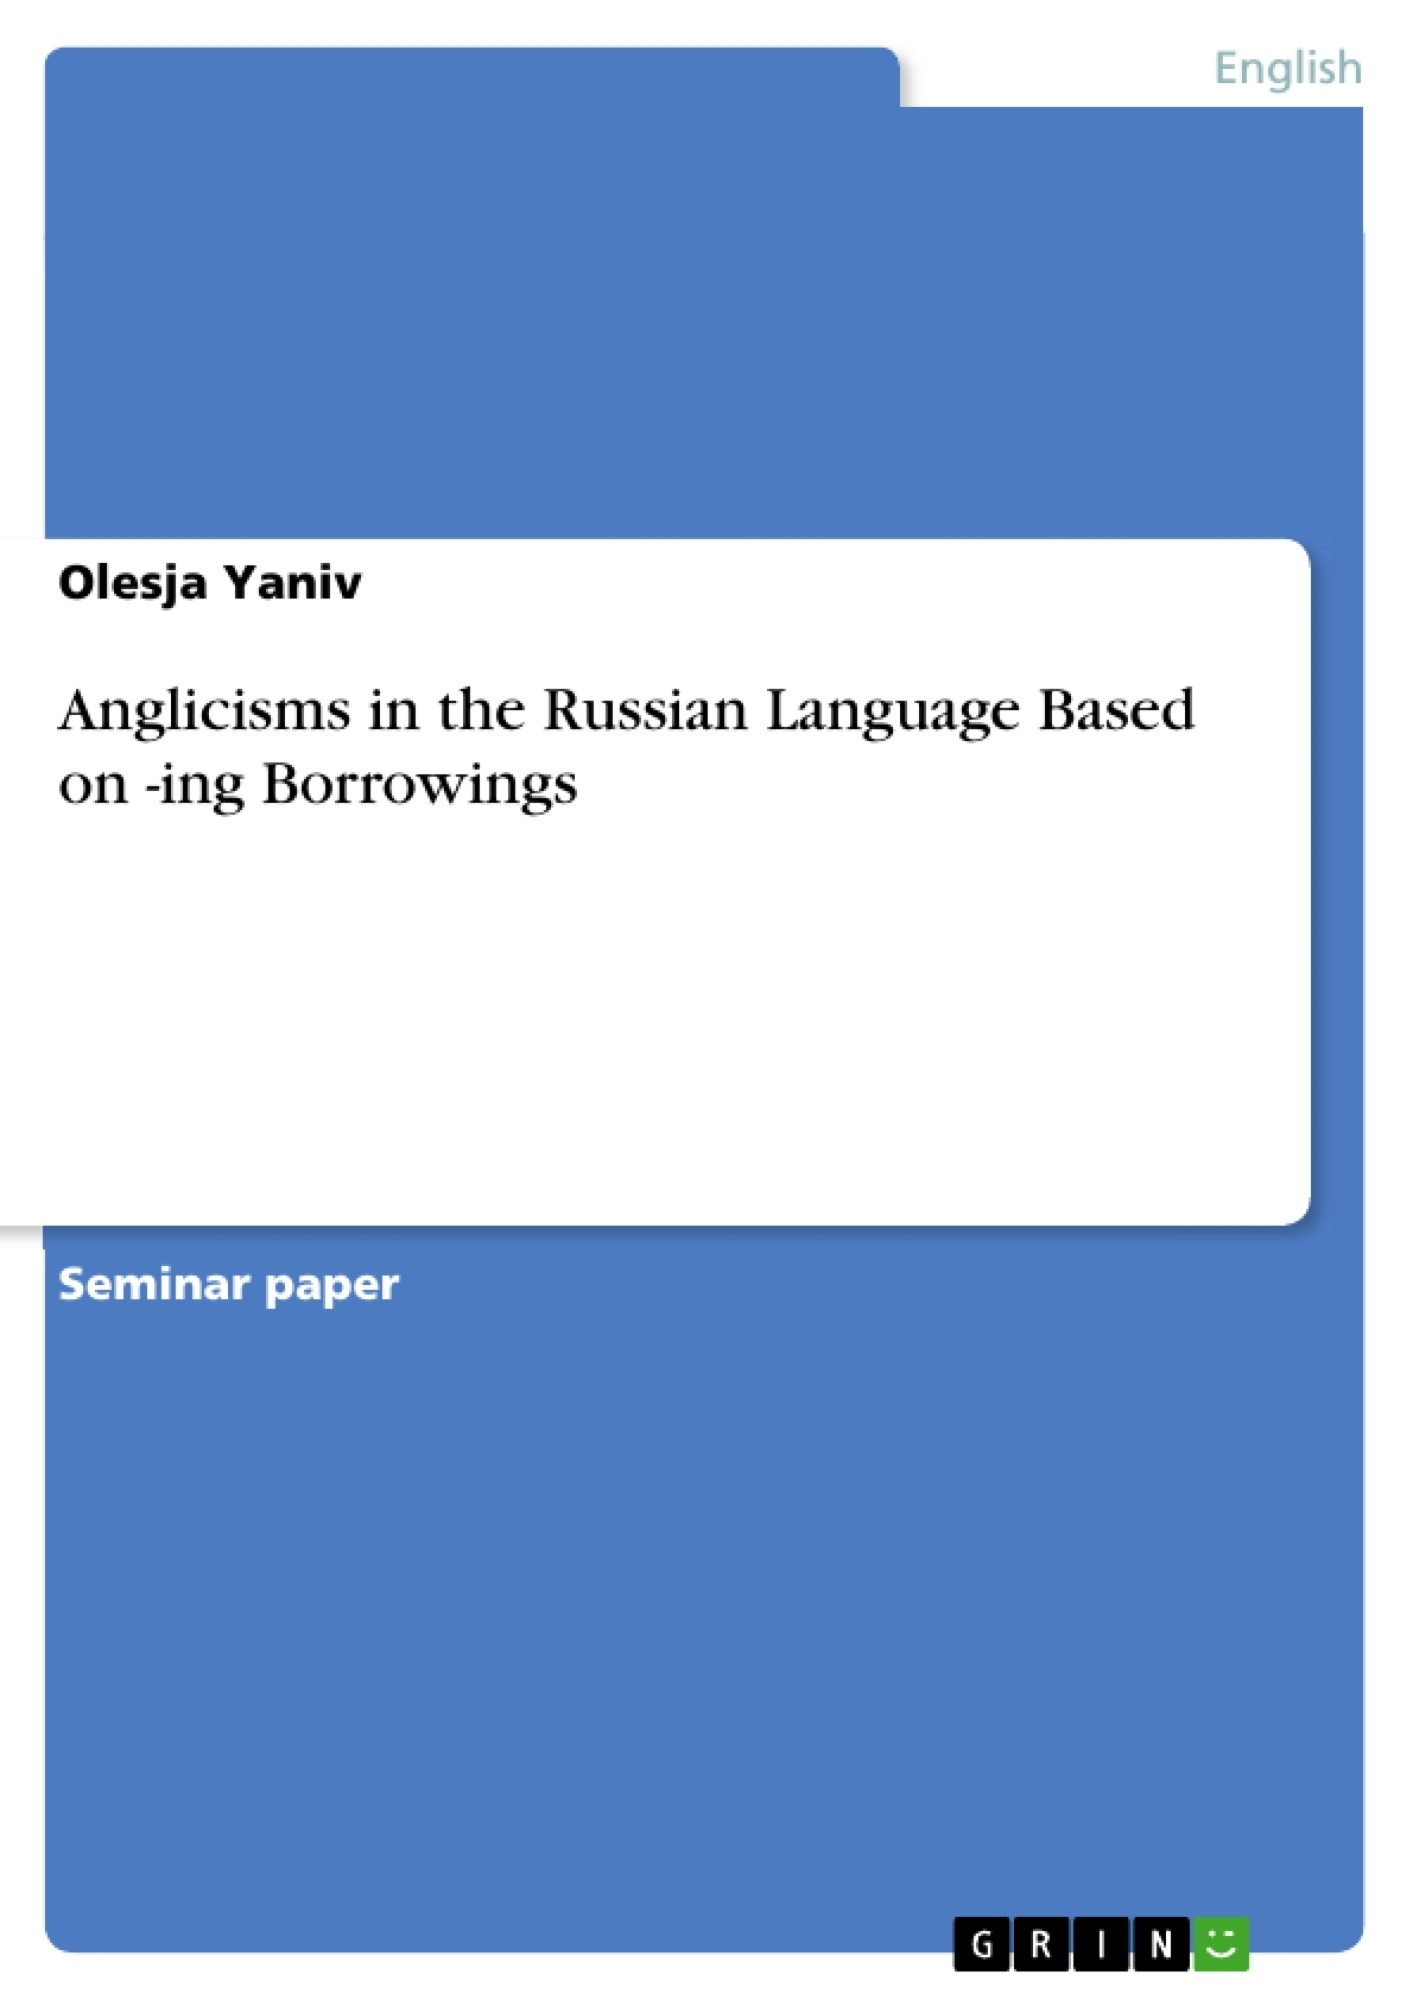 Title: Anglicisms in the Russian Language Based on -ing Borrowings